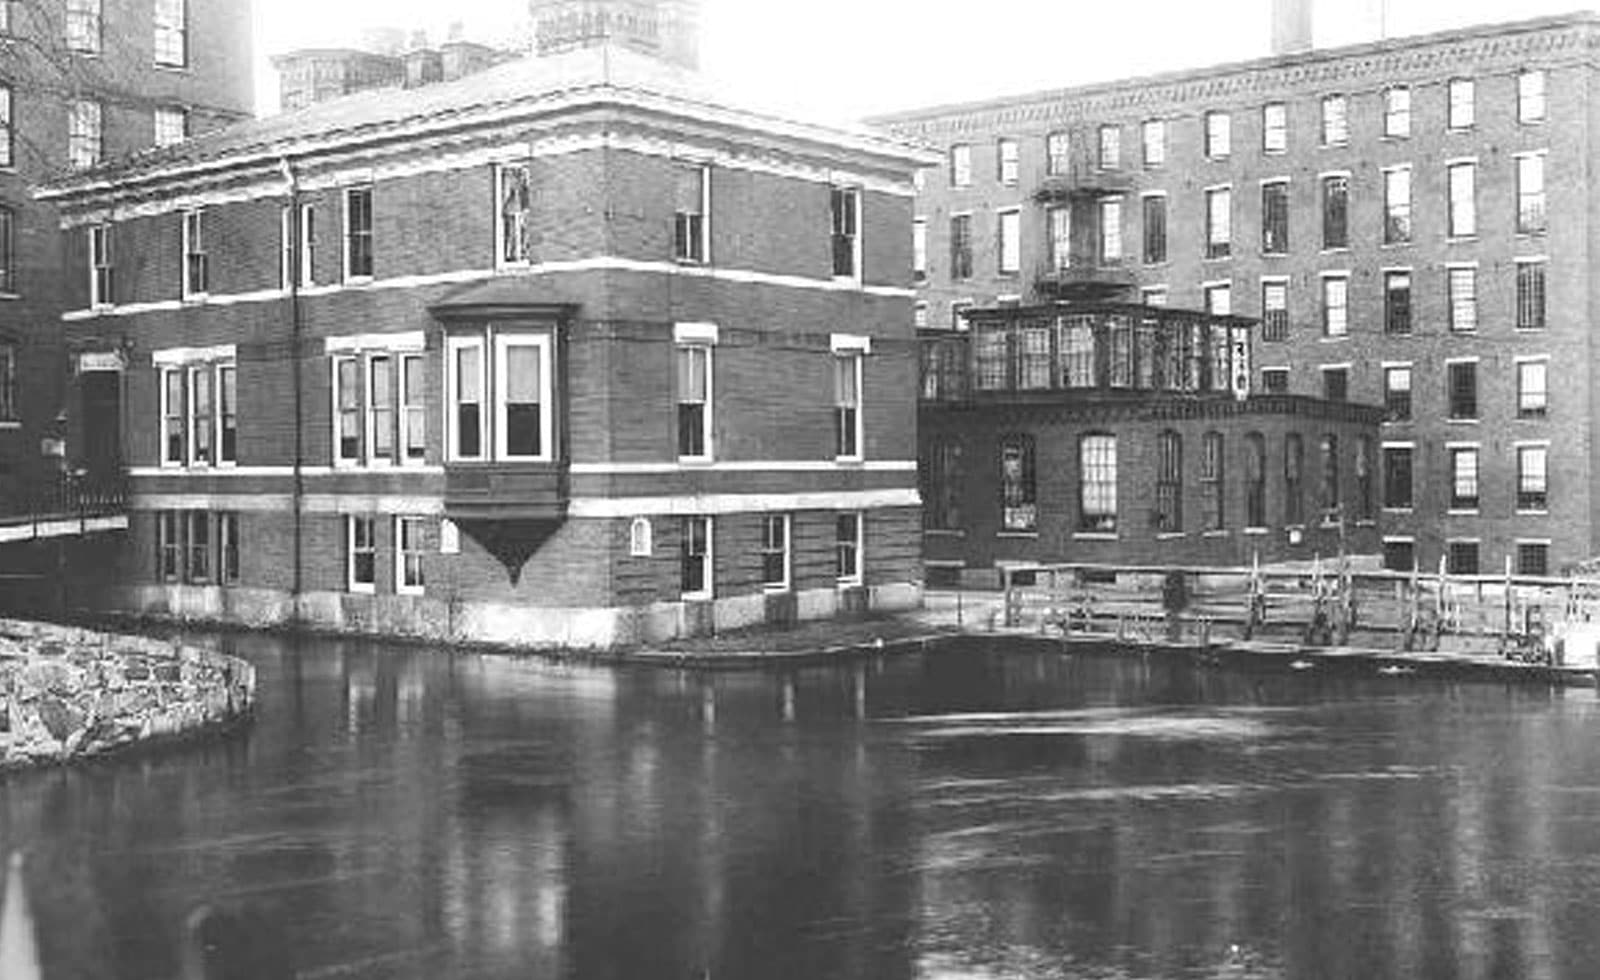 lofts at perkins place black and white photo of canal